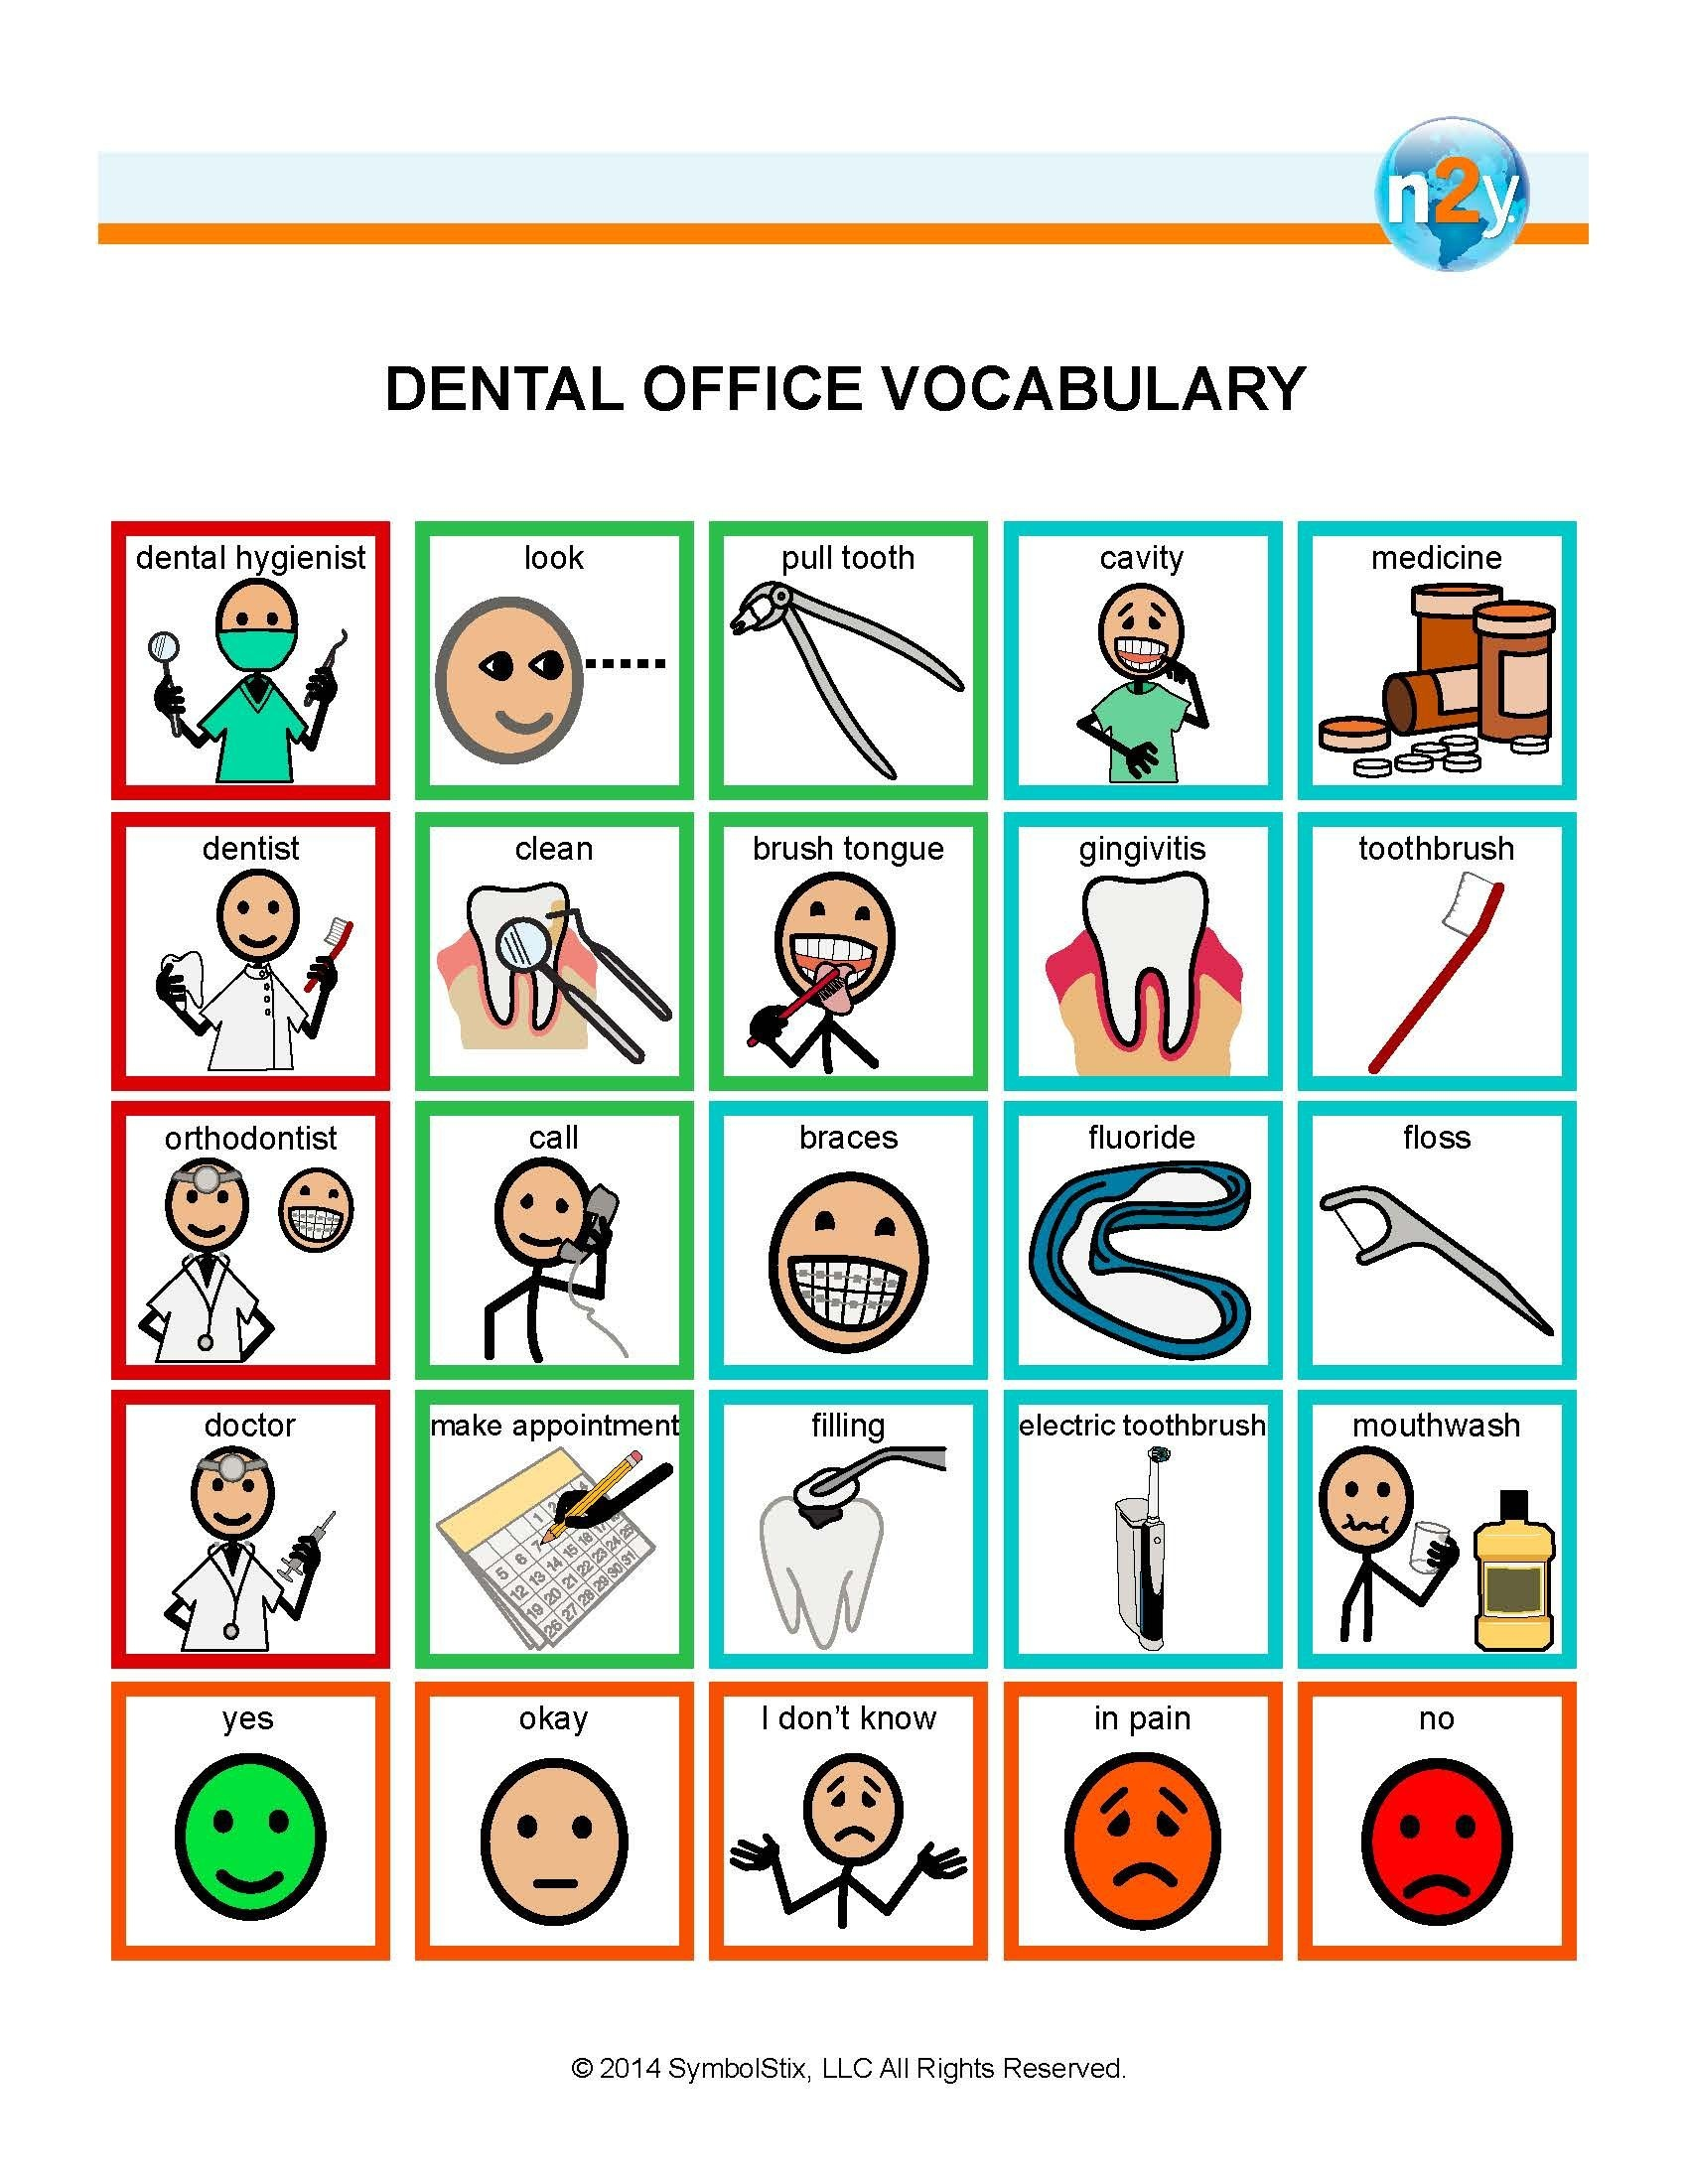 Dental Office Vocabulary For Better Understanding And Communication - Free Printable Widgit Symbols